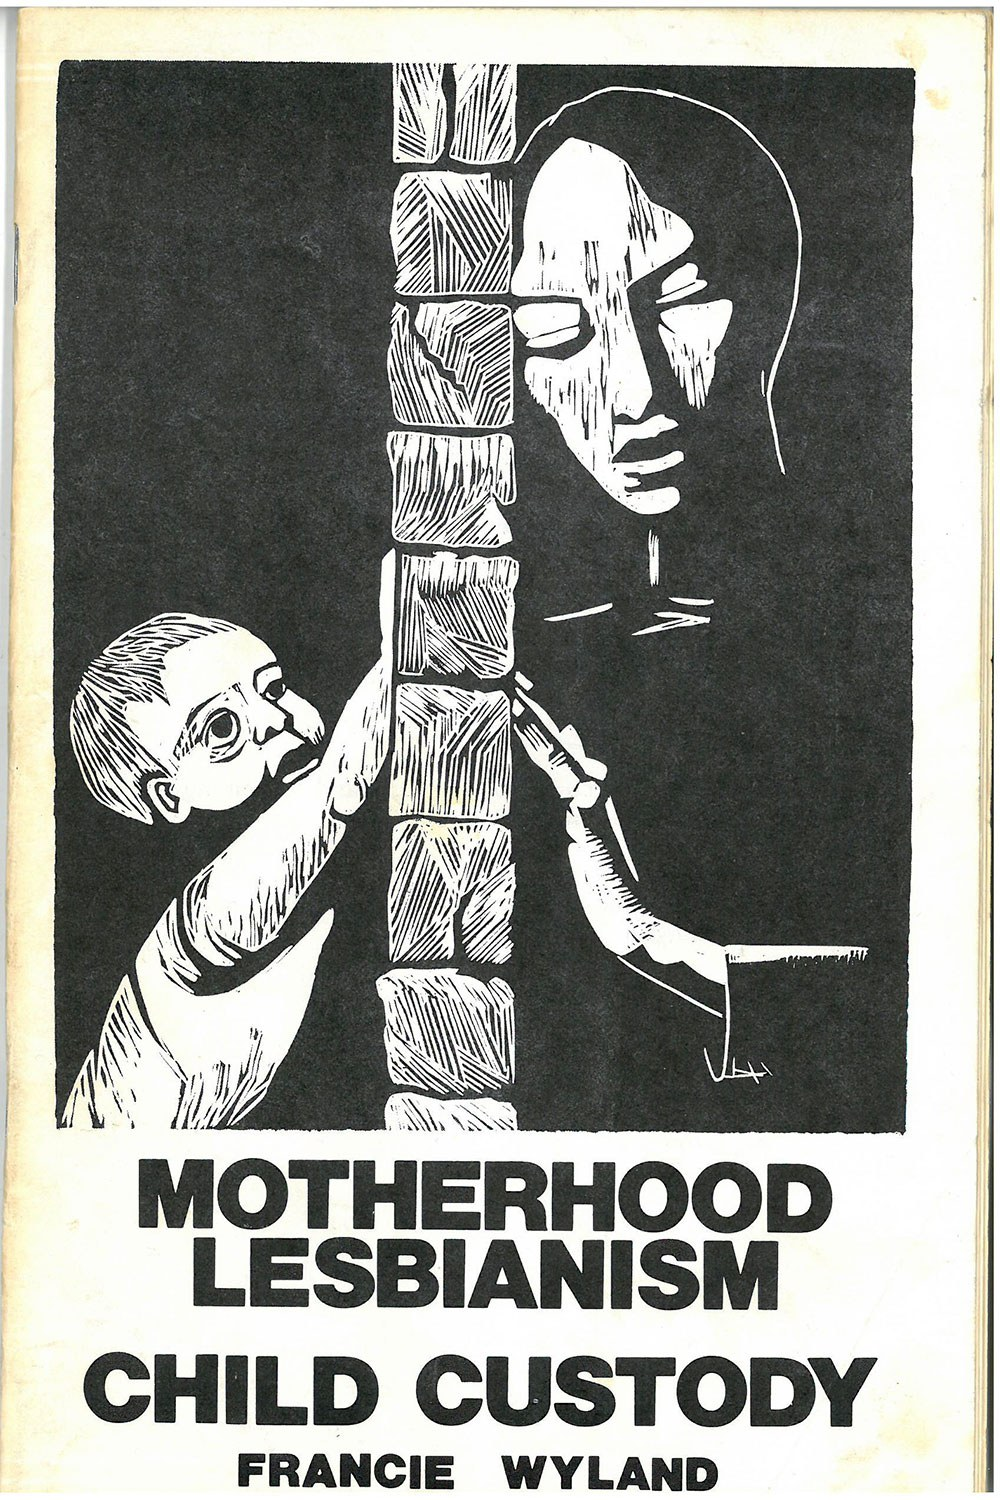 Wyland, Francie. 1976. Motherhood, Lesbianism, Child Custody: The Case for Wages for Housework. Toronto: Wages Due Lesbians. Cover woodcut by Anne Quigley. CLGA collection, in monographs, folder M 1985-054].